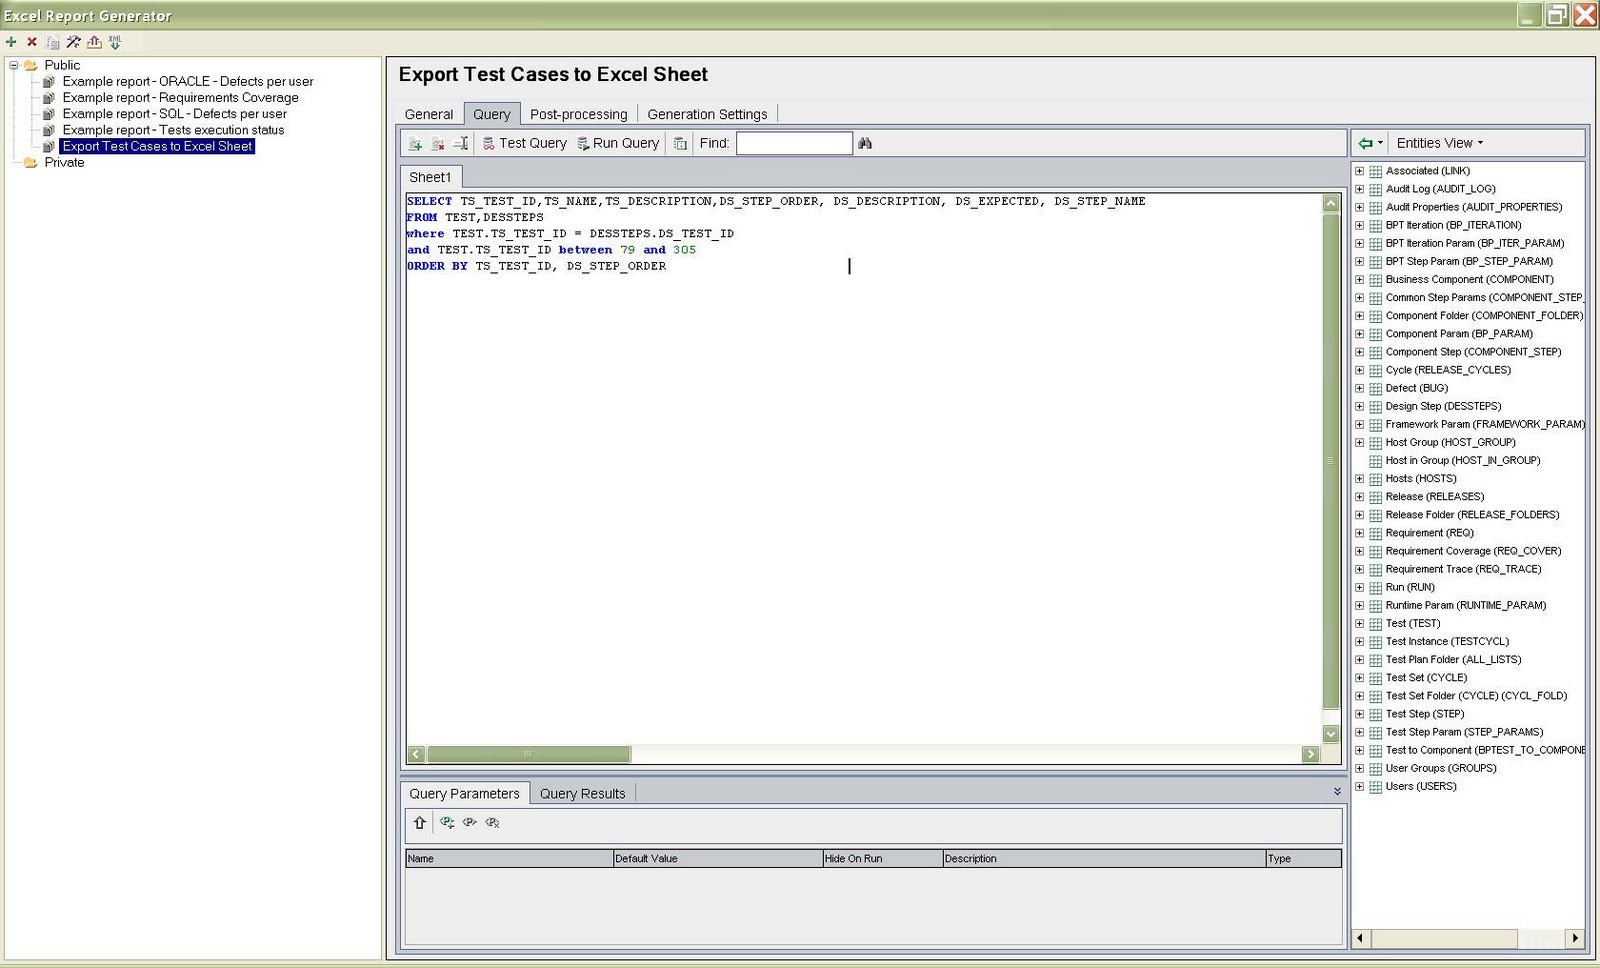 Export Test Cases From Qc To Excel Using Vbscript - tampaseven